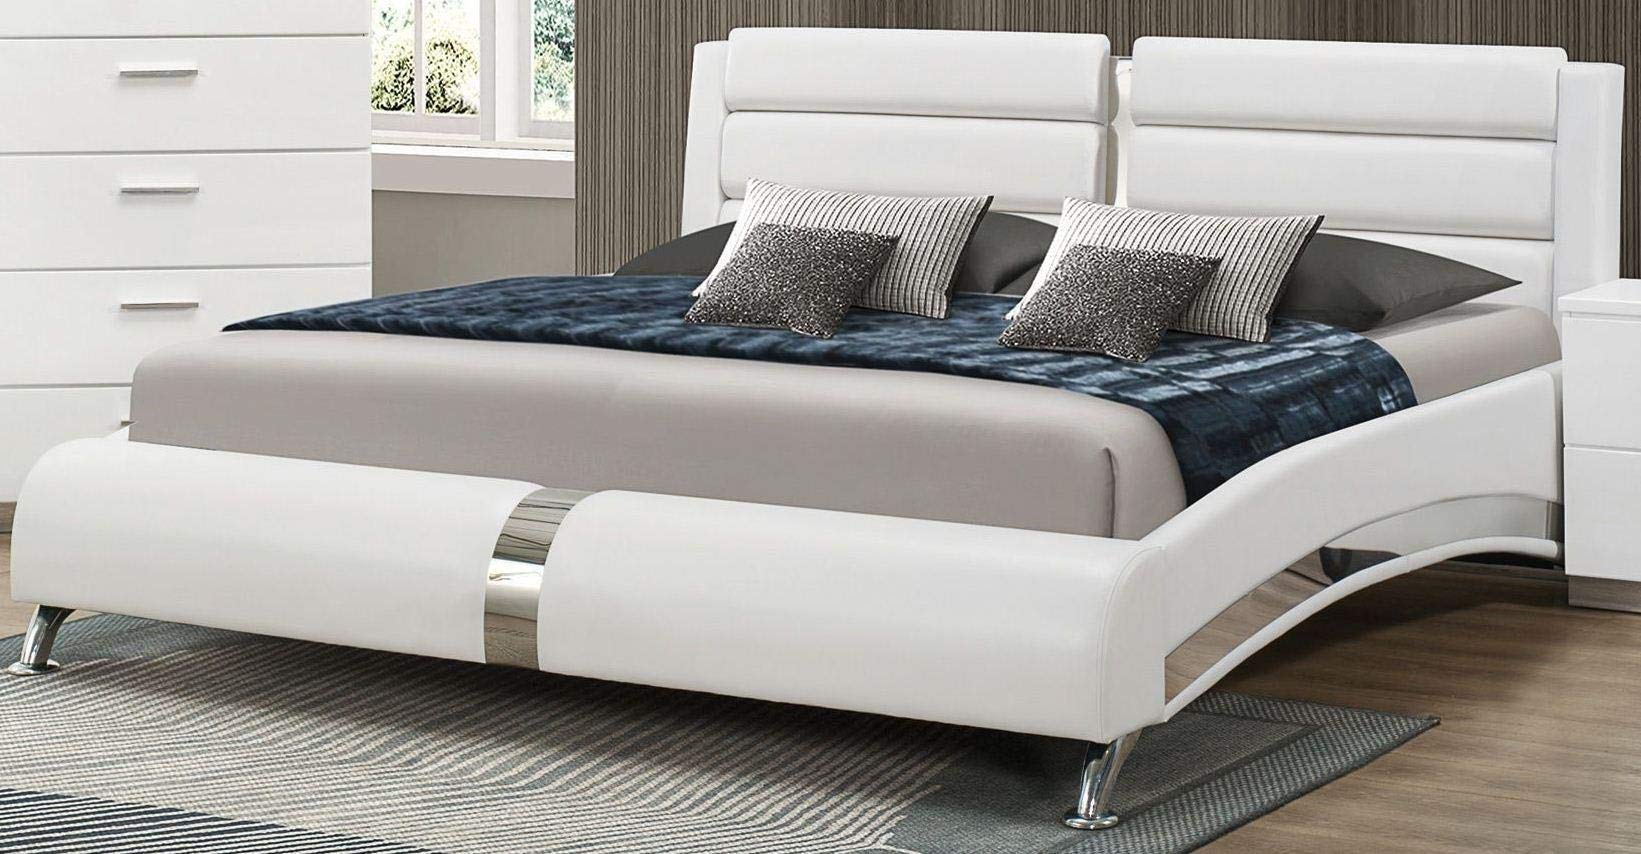 Coaster Home Furnishings 300345Q Upholstered Bed, 65'' W x 97.5'' D x 40'' H, White/Chrome